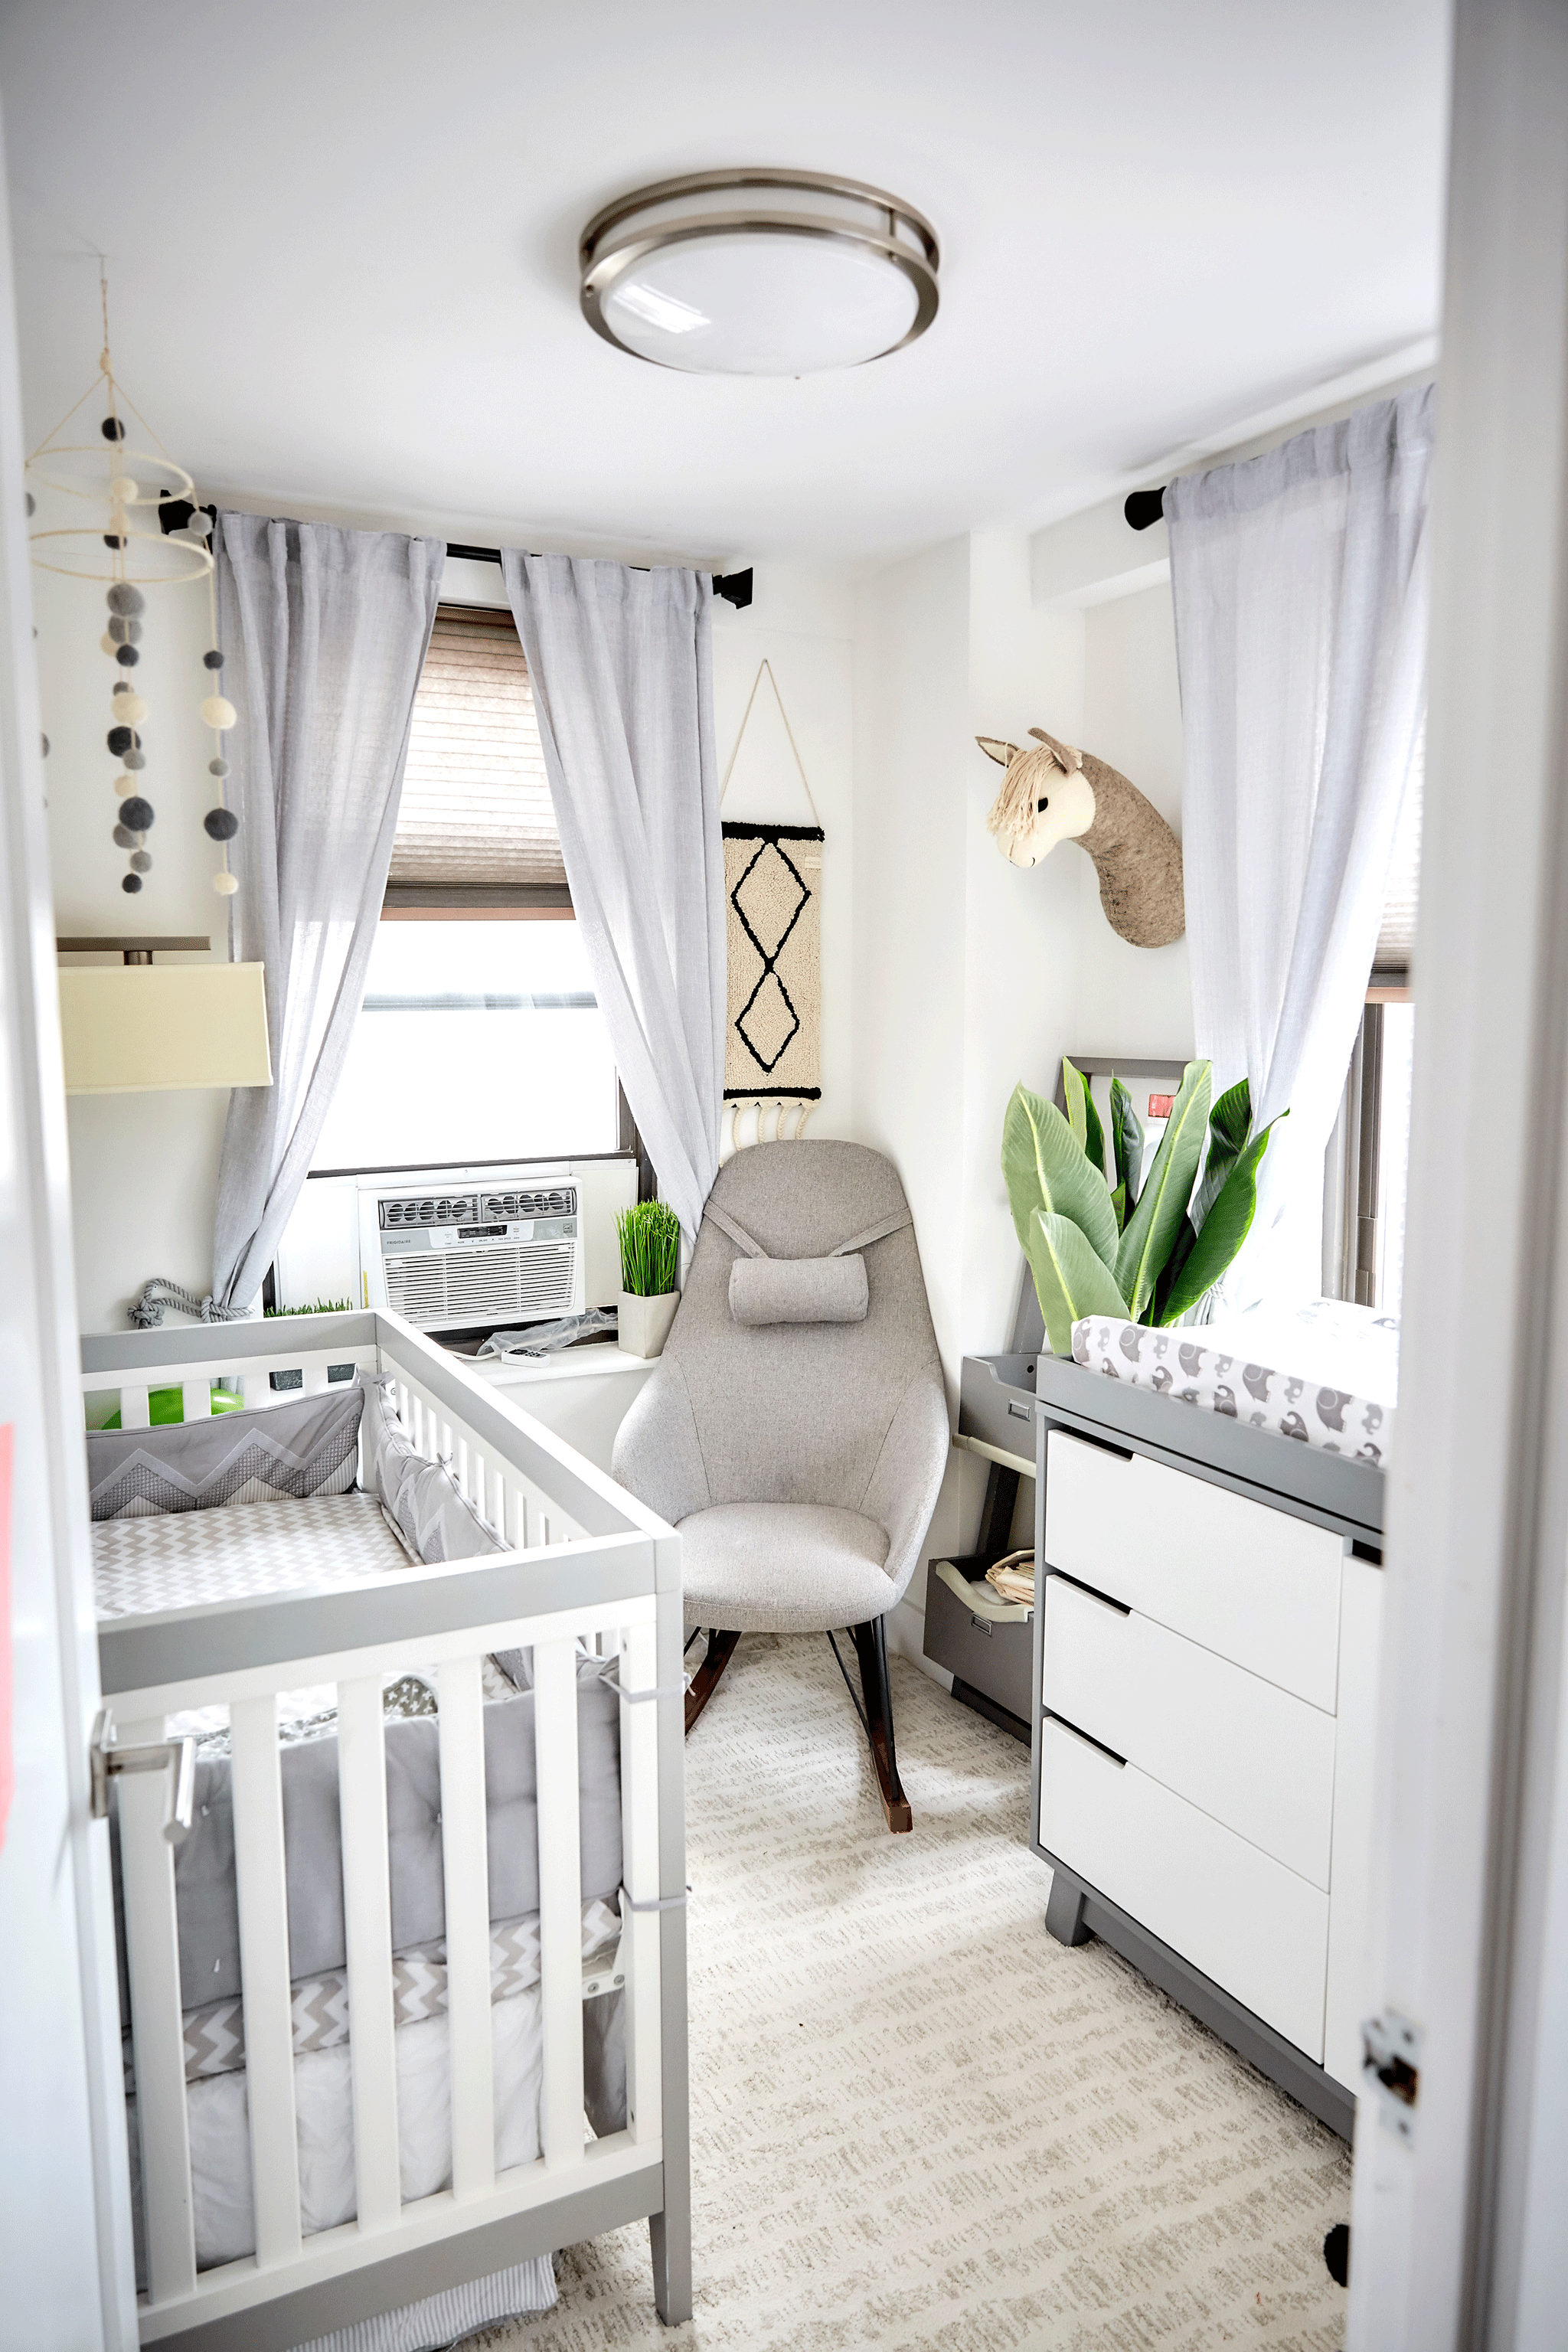 small nursery furniture on in the nursery with nycfitfam project nursery small room nursery small space nursery grey baby room small space nursery grey baby room